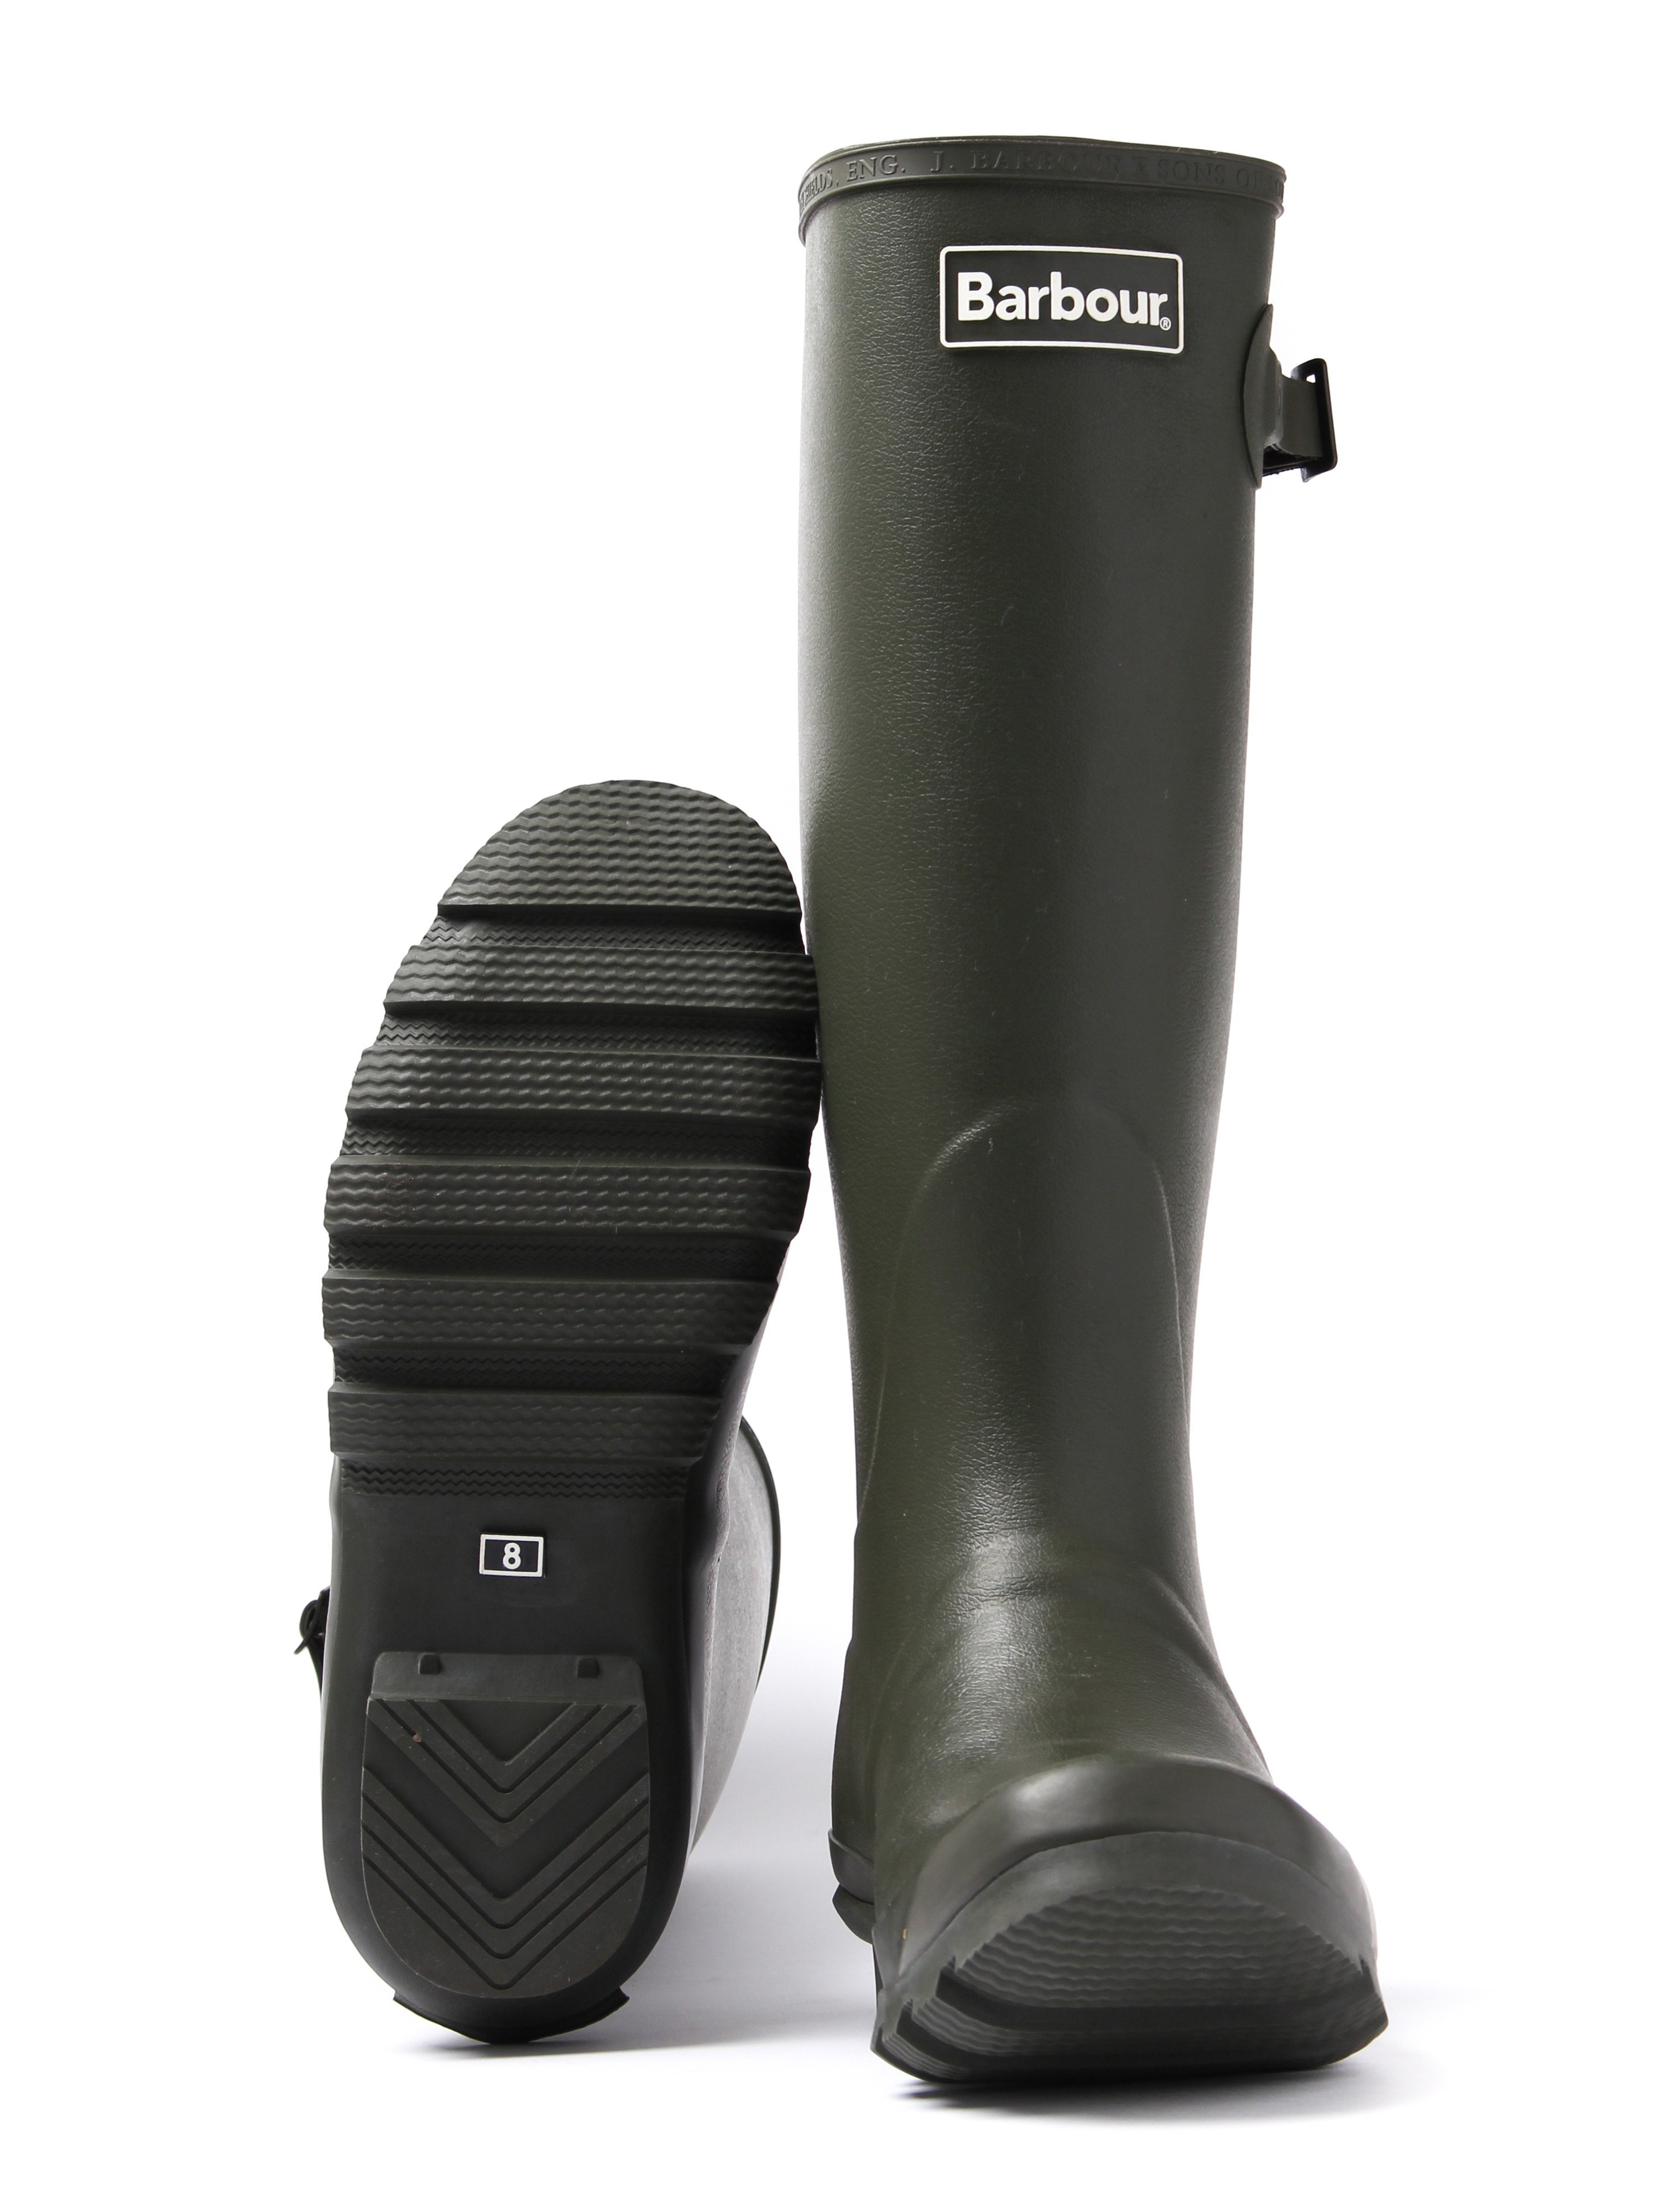 Barbour Men's Bede Wellington Boots - Olive